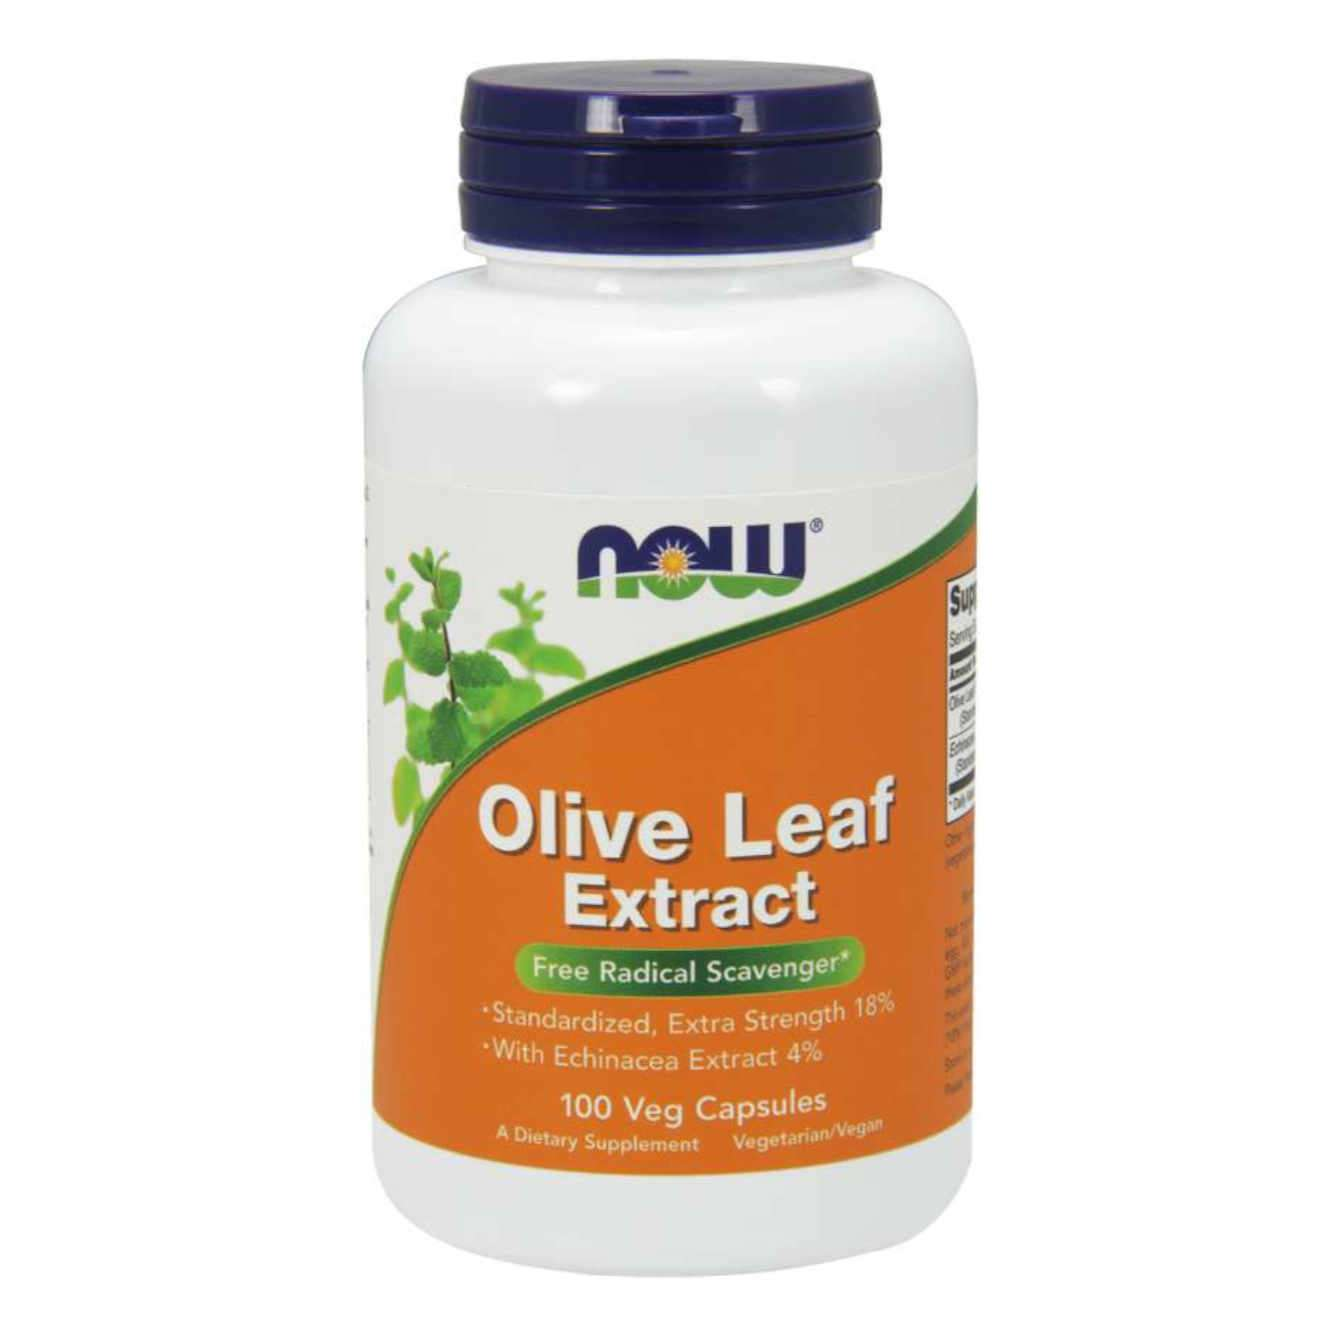 OLIVE LEAF EXTRACT 400mg - 100 veg caps